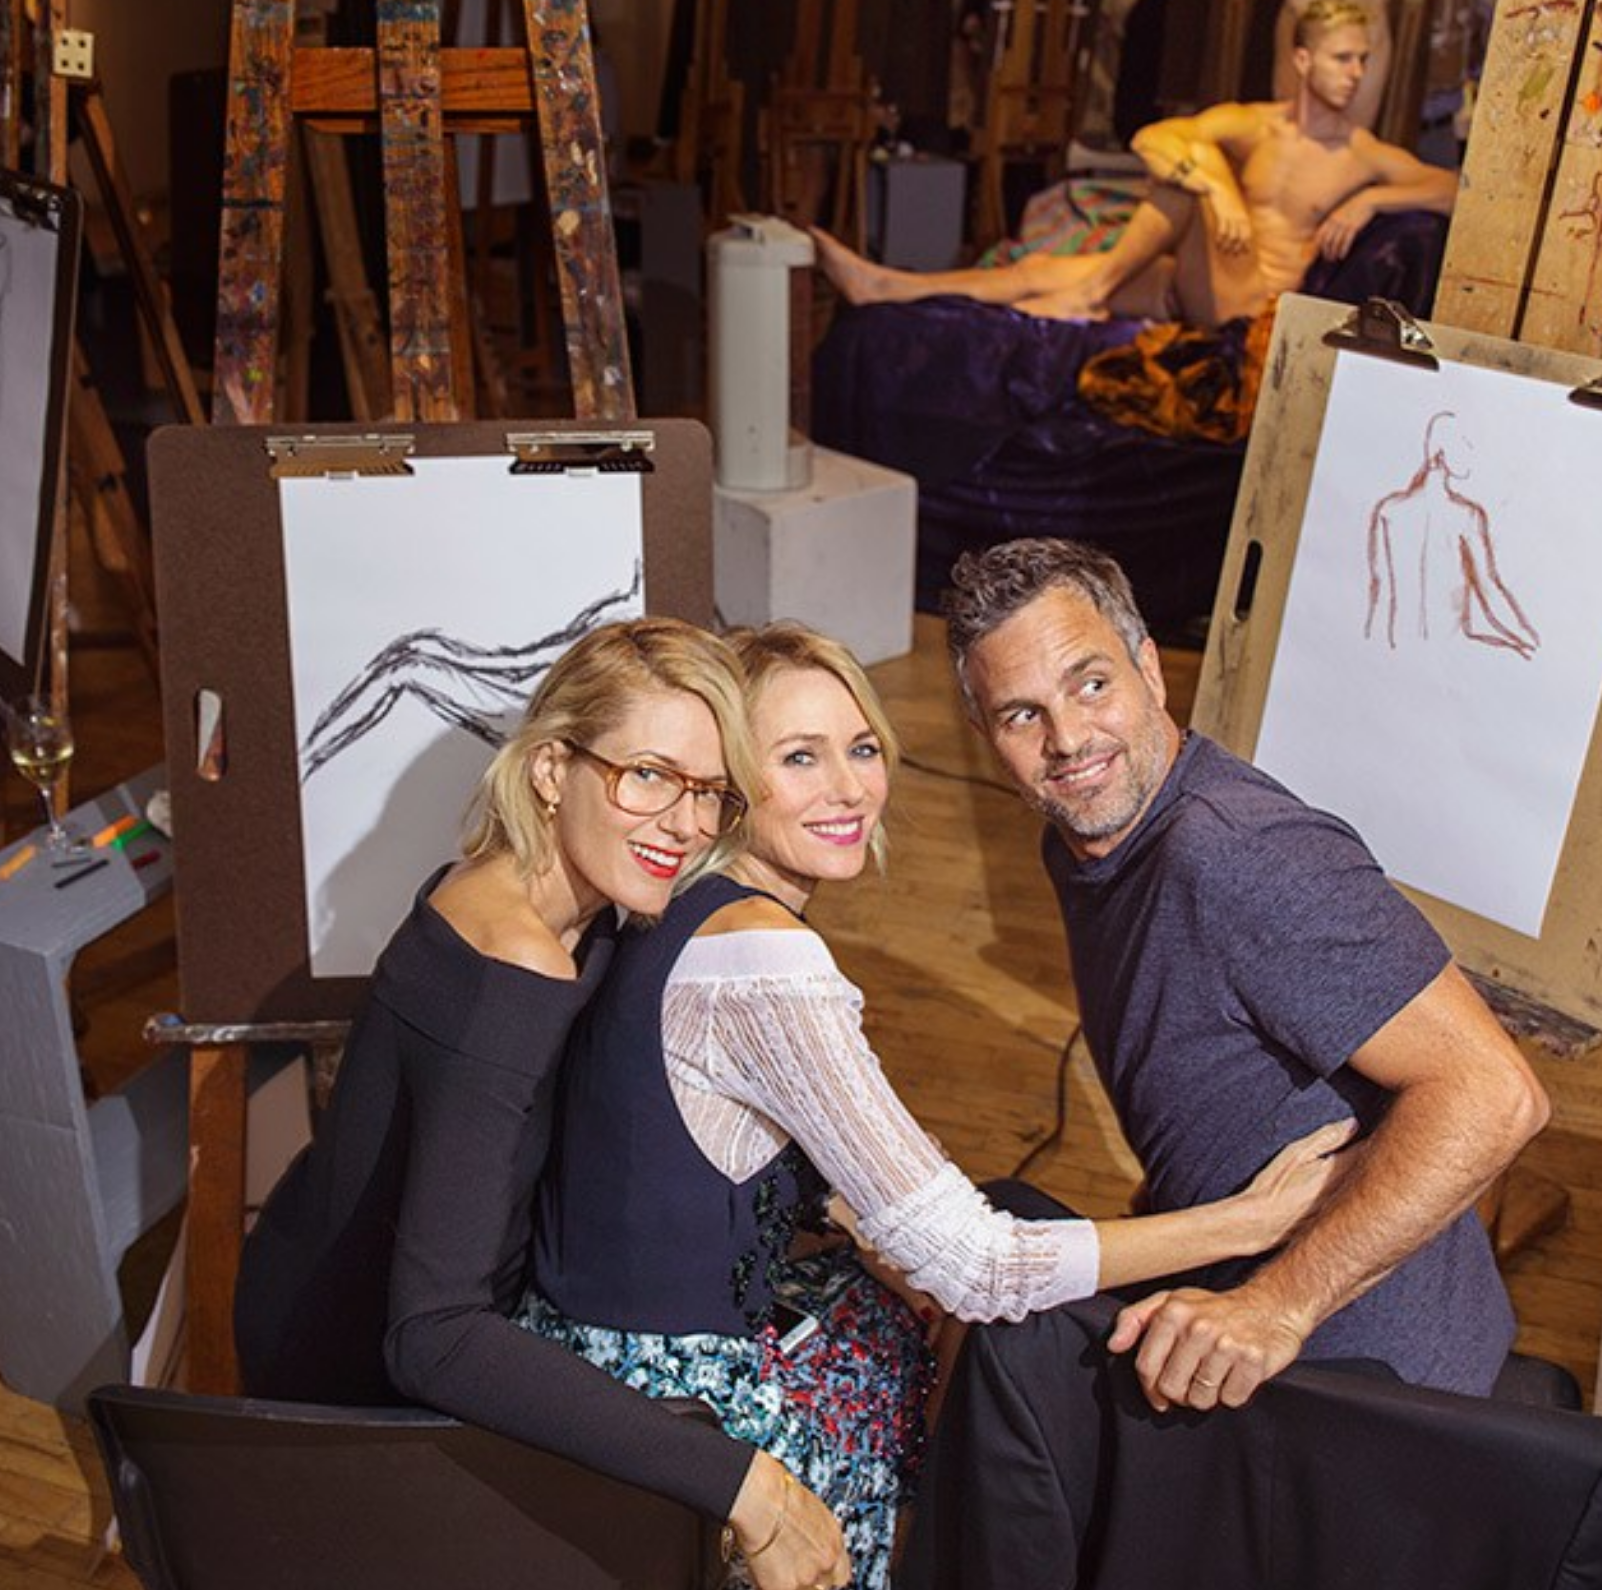 See Naomi Watts, Mark Ruffalo, and a Few Nudes at a New York Academy of Art Fund-Raiser